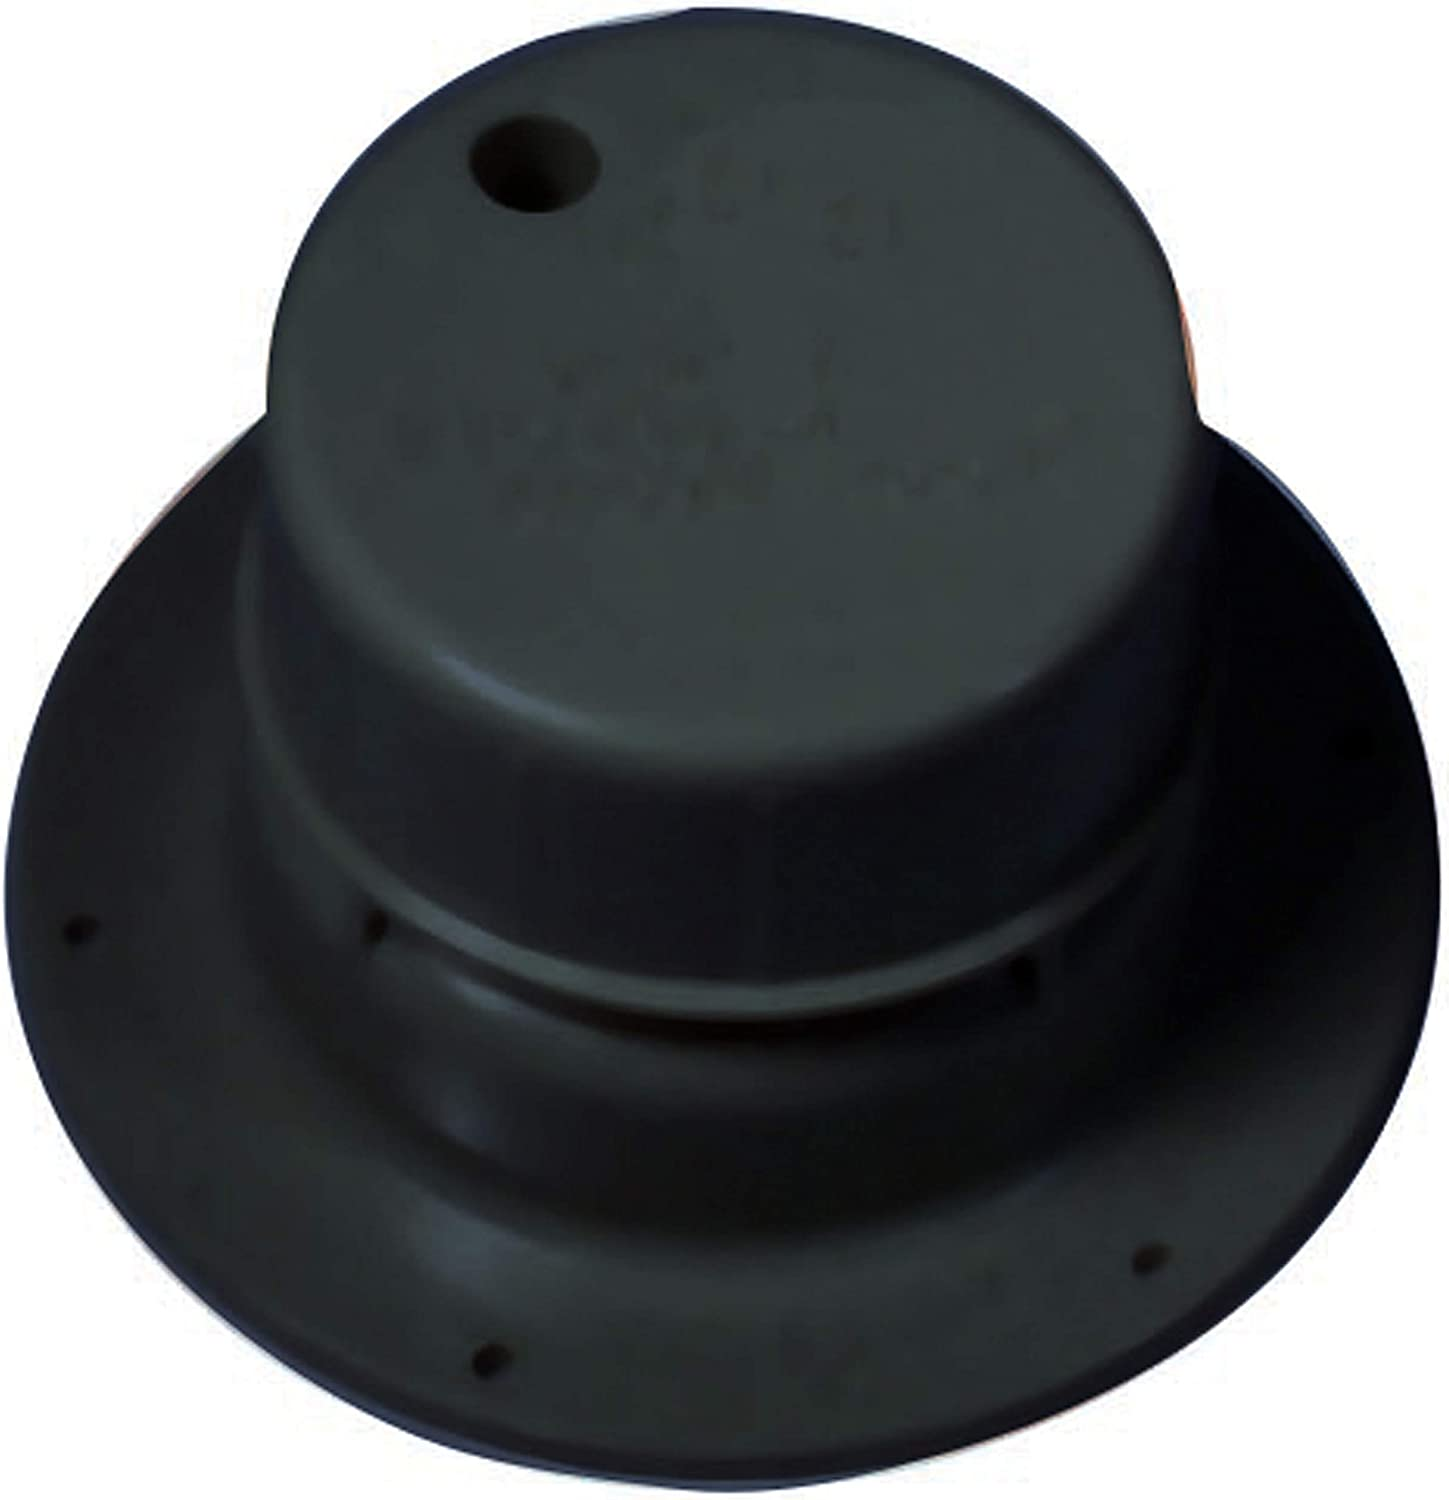 Ventline V2049-55 Plumbing Vent with Snap-On Cap - Black